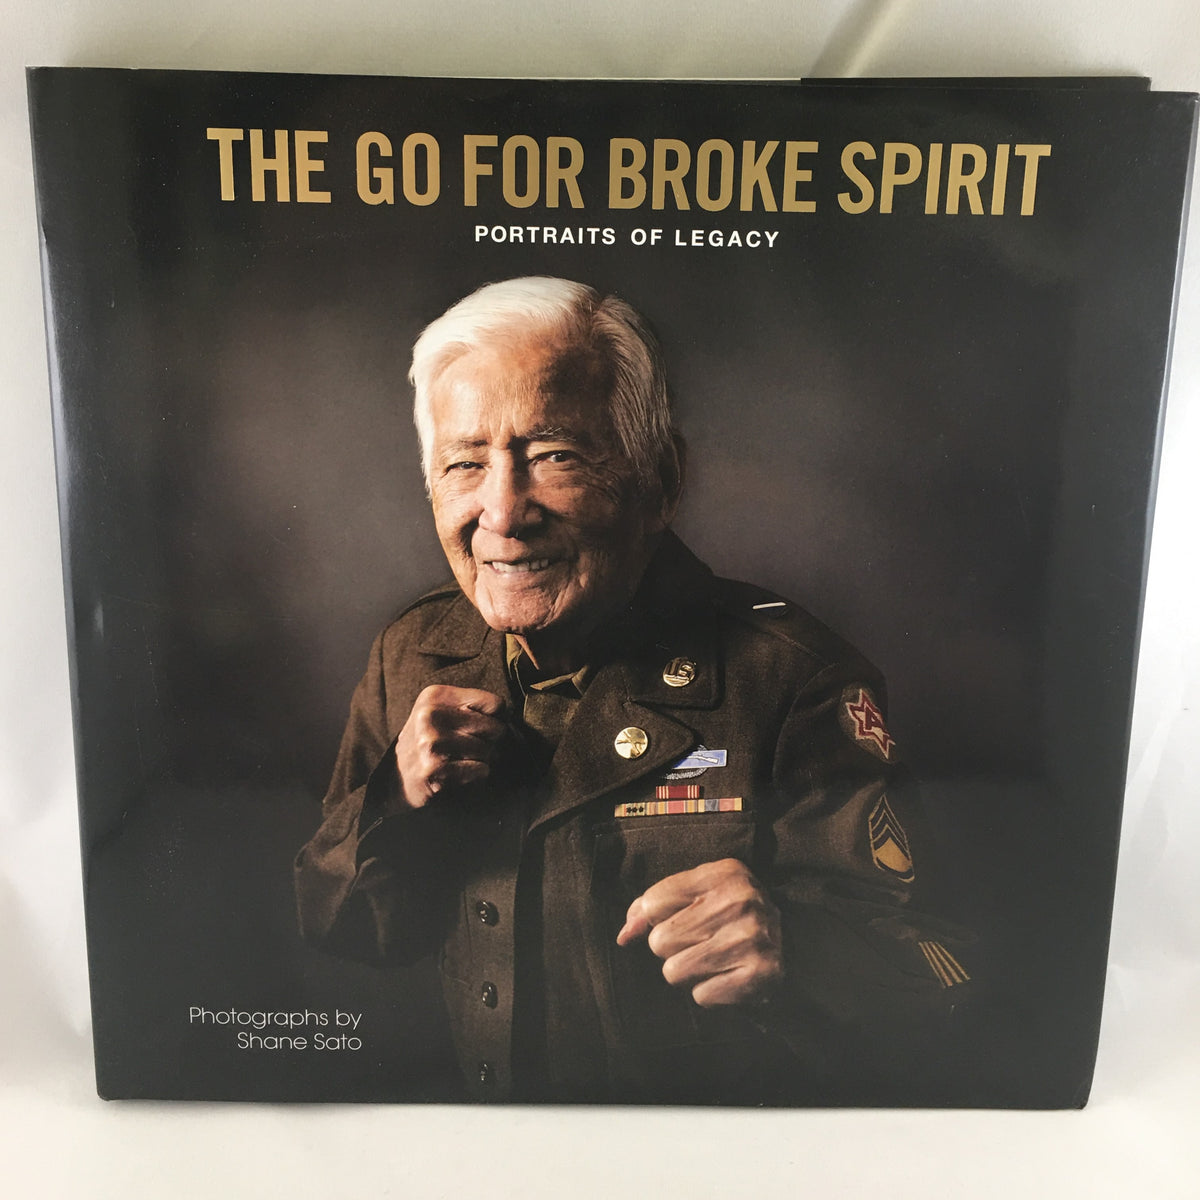 The Go For Broke Spirit: Portraits of Legacy